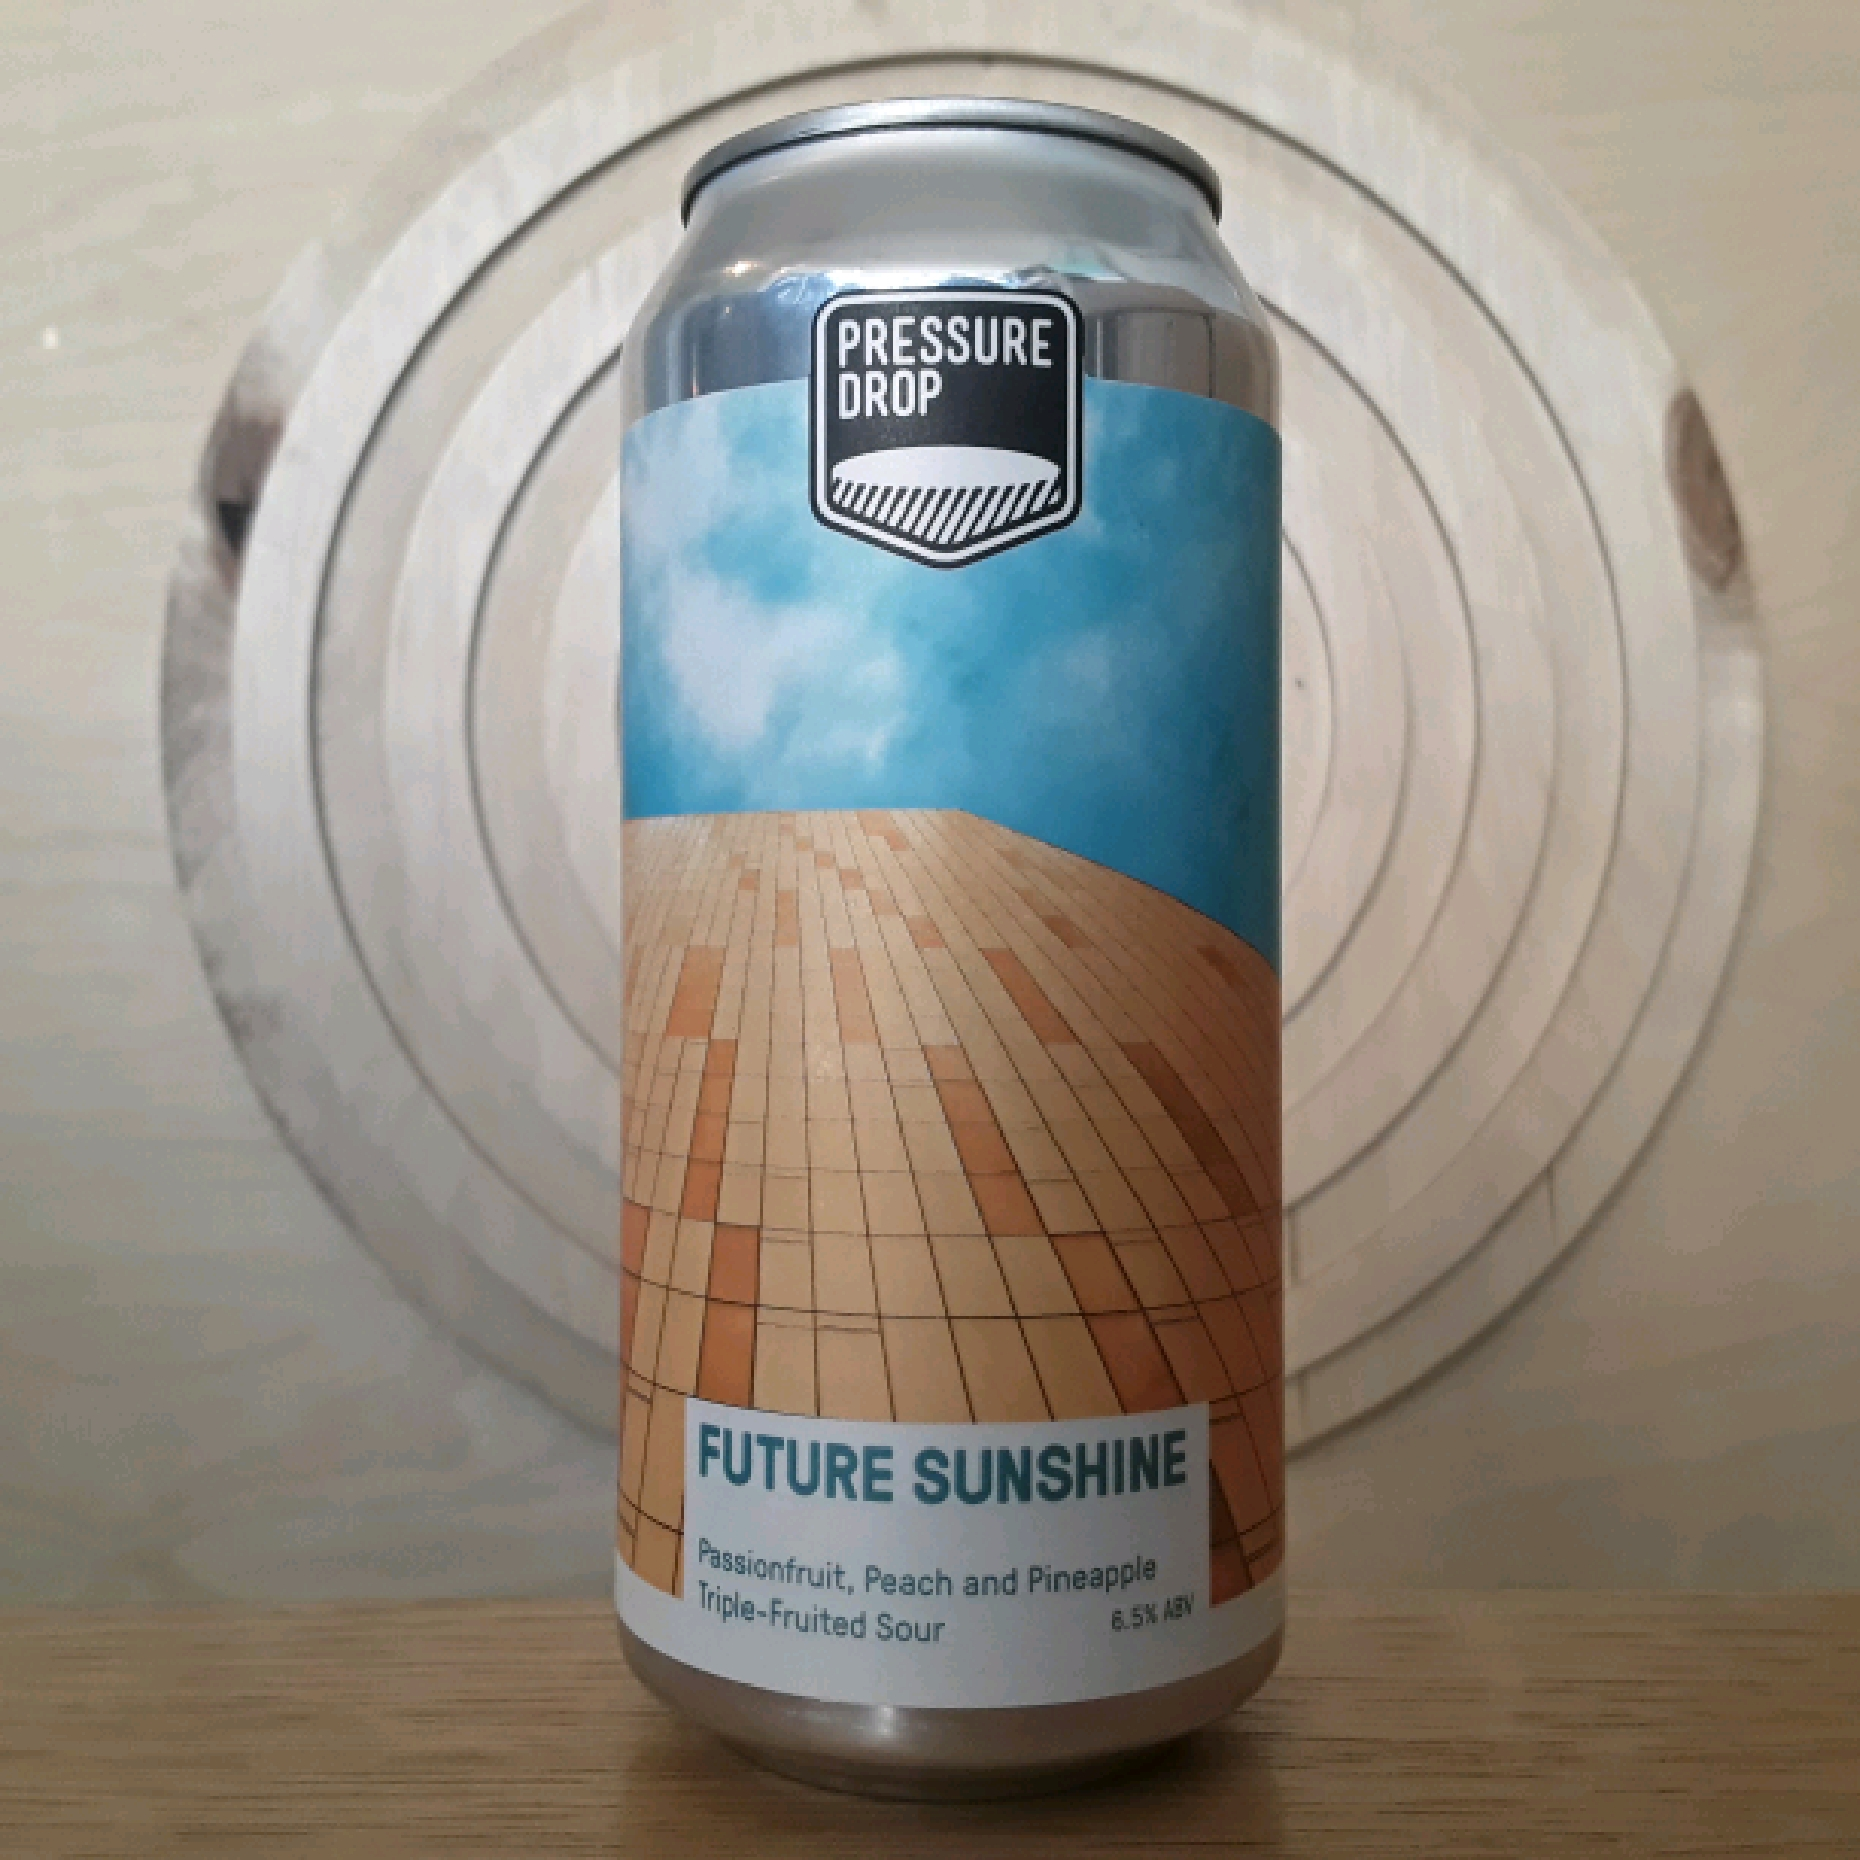 Pressure Drop Future Sunshine Peach, Pineapple & Passionfruit | Sour